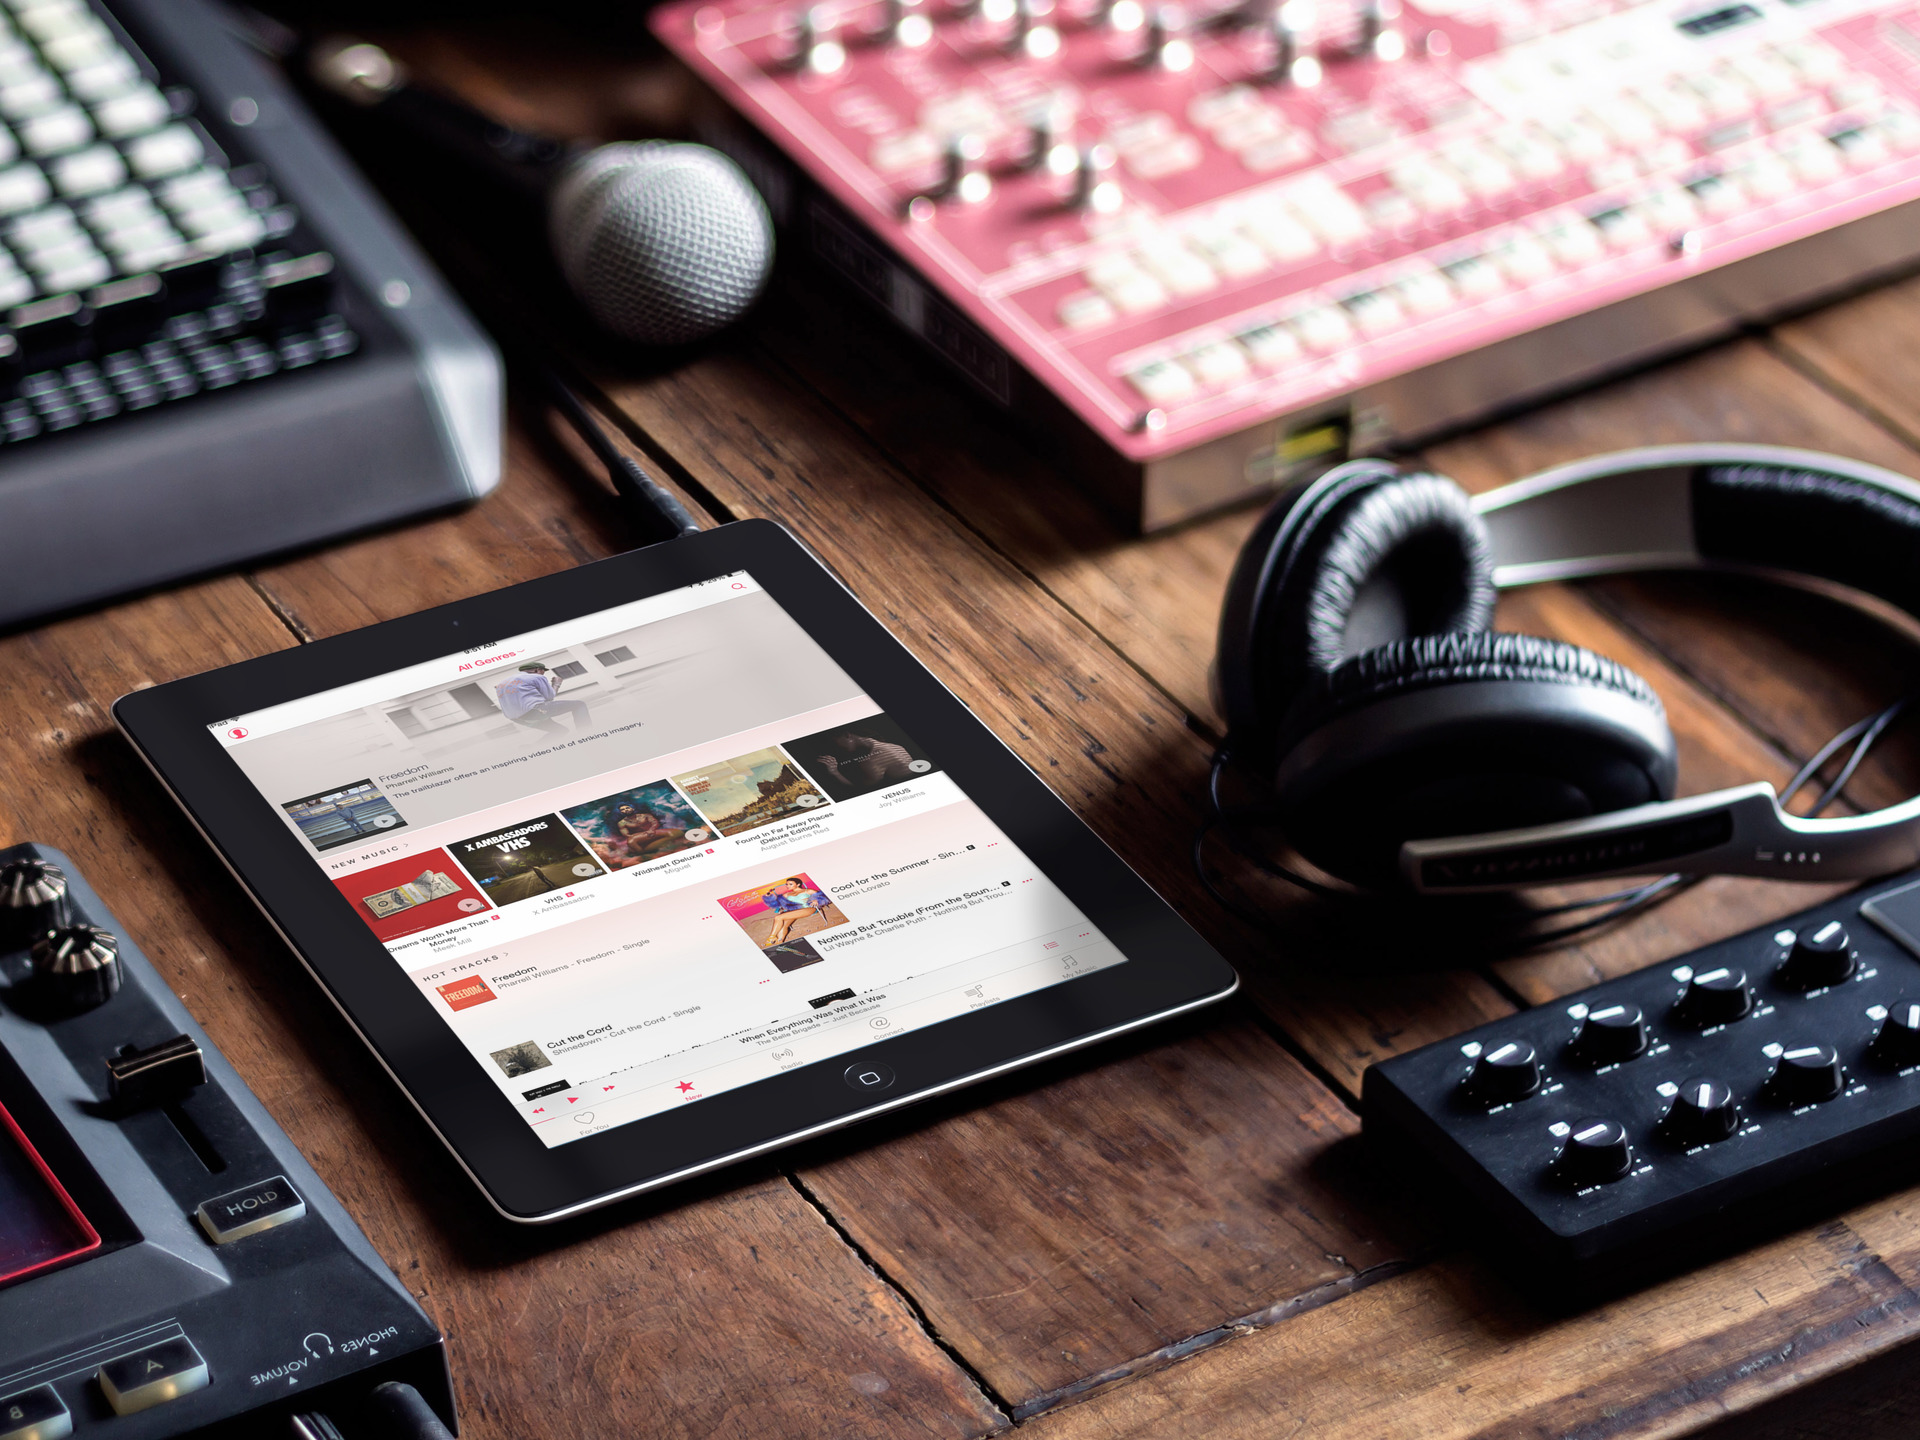 7 great tips for making the most of Apple Music